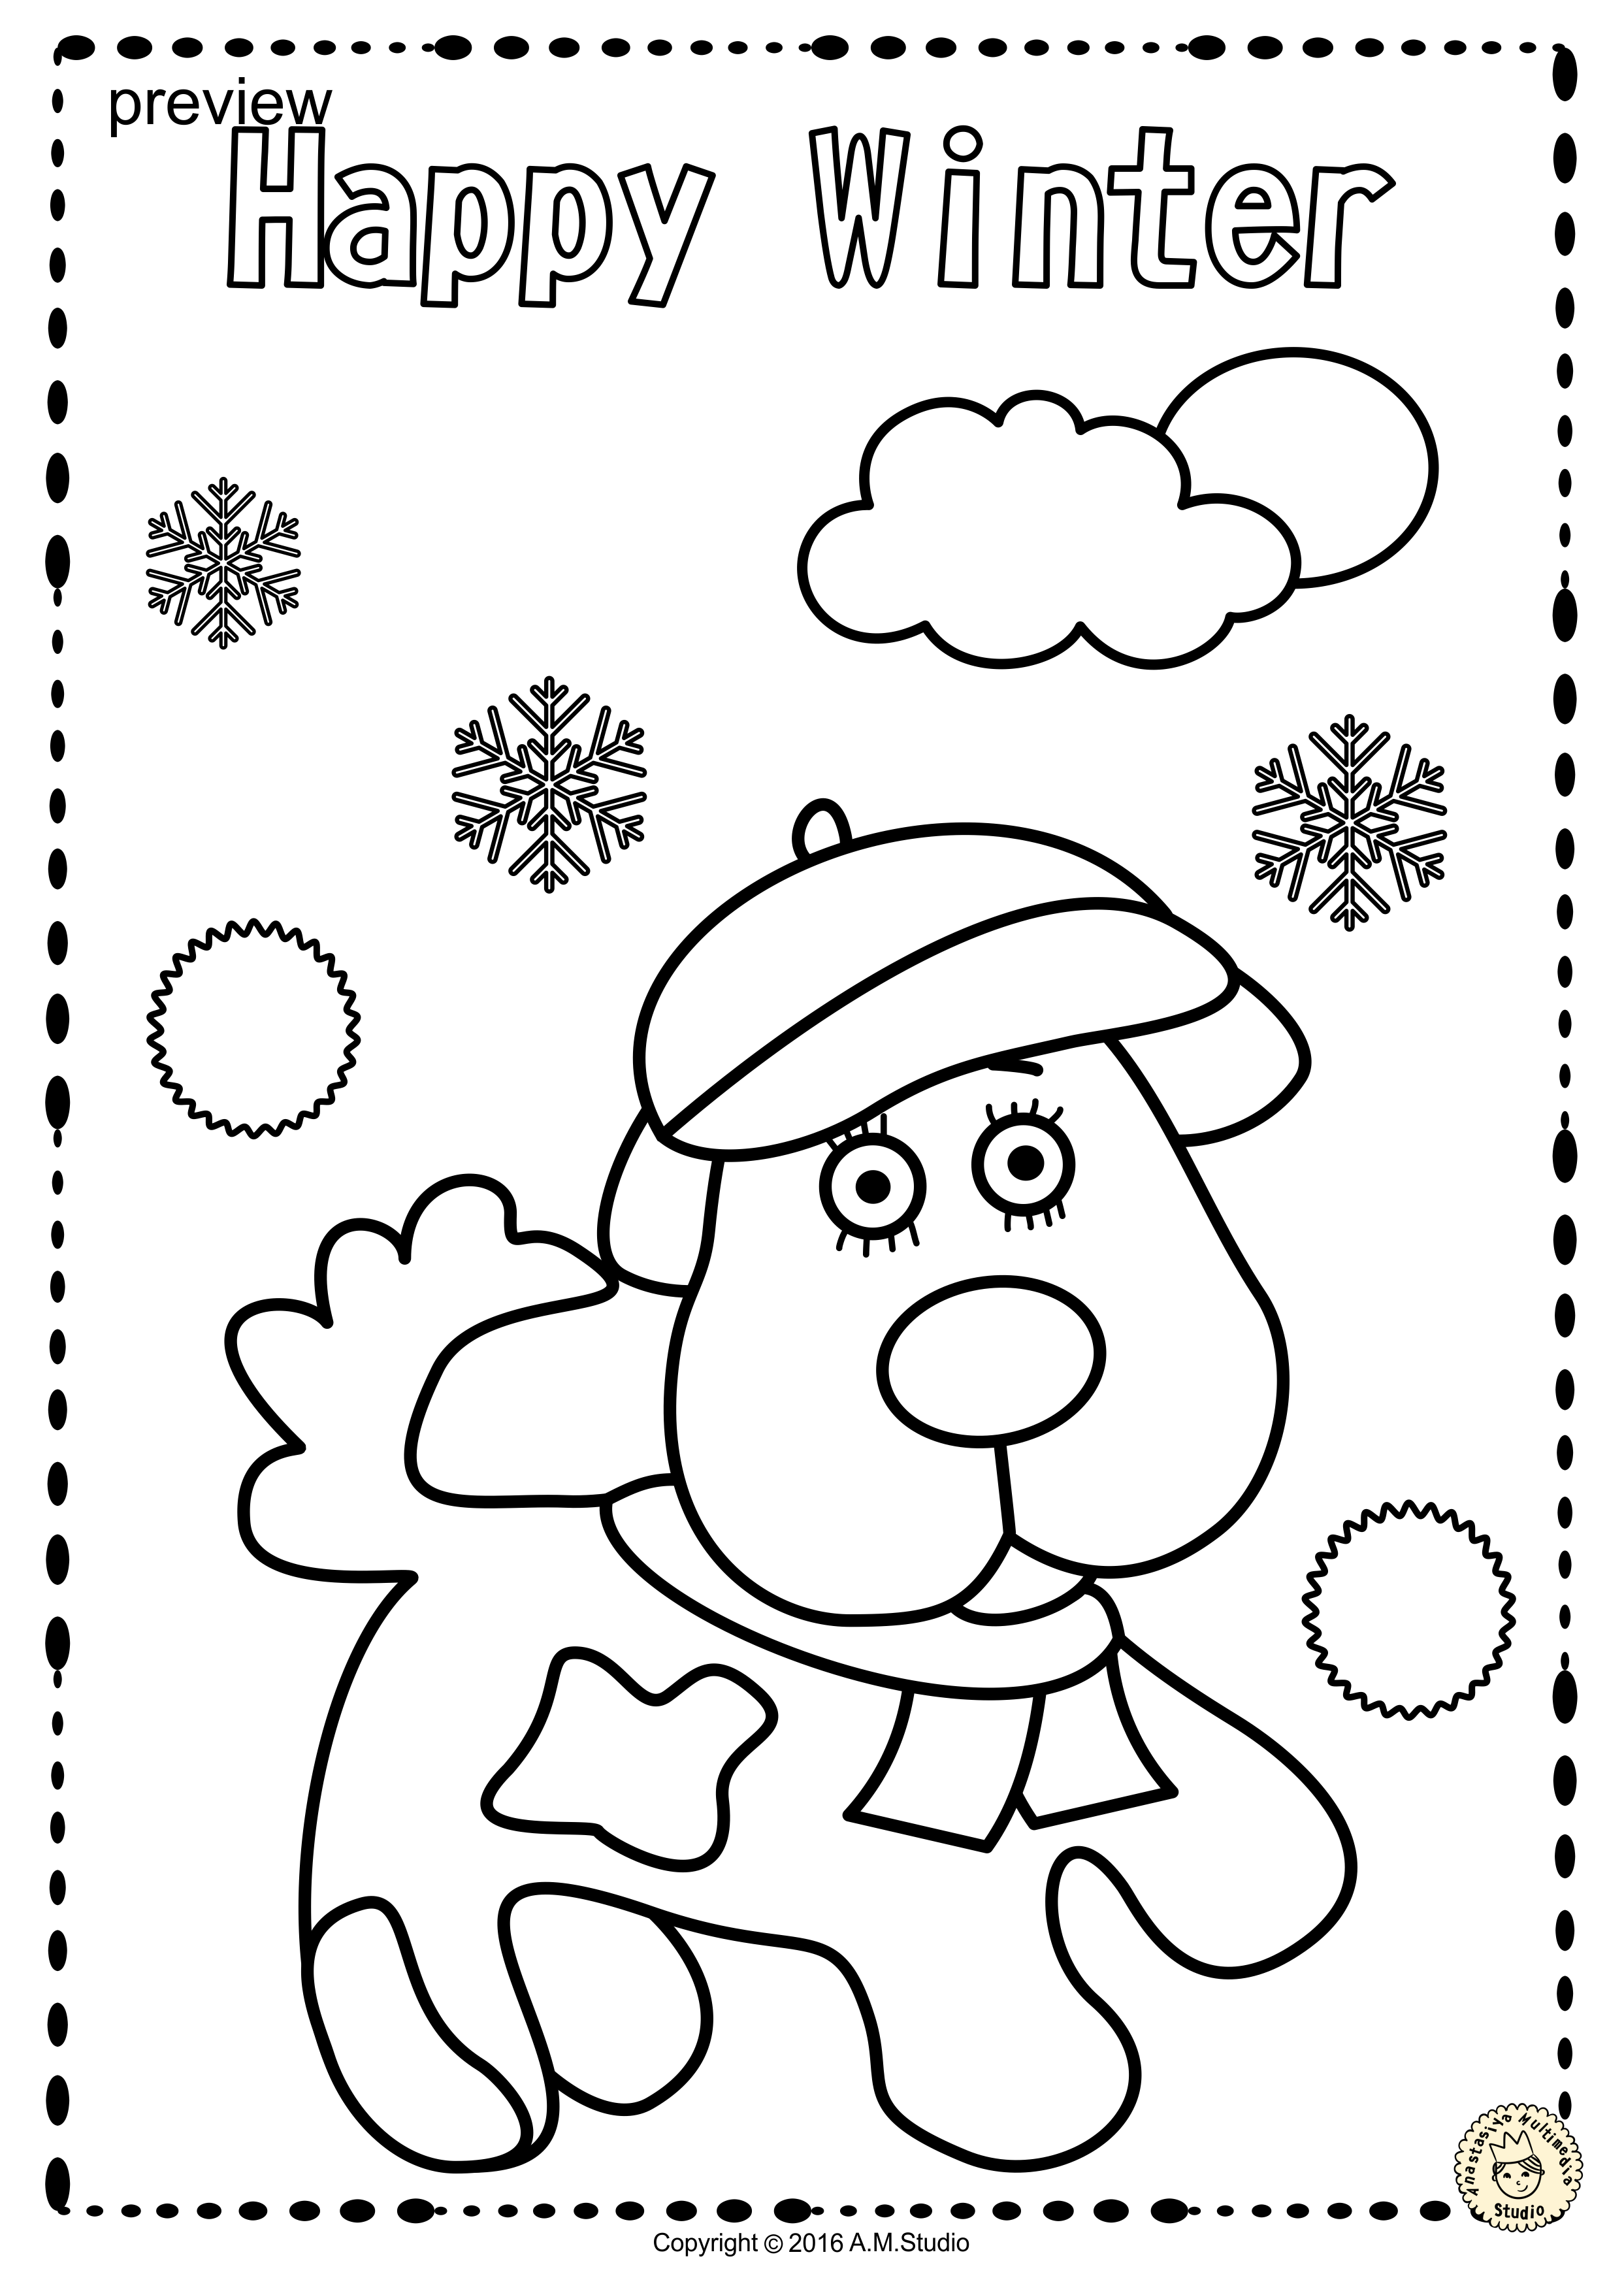 This Coloring Set Includes 25 Winter Themed Coloring Pages For Kids